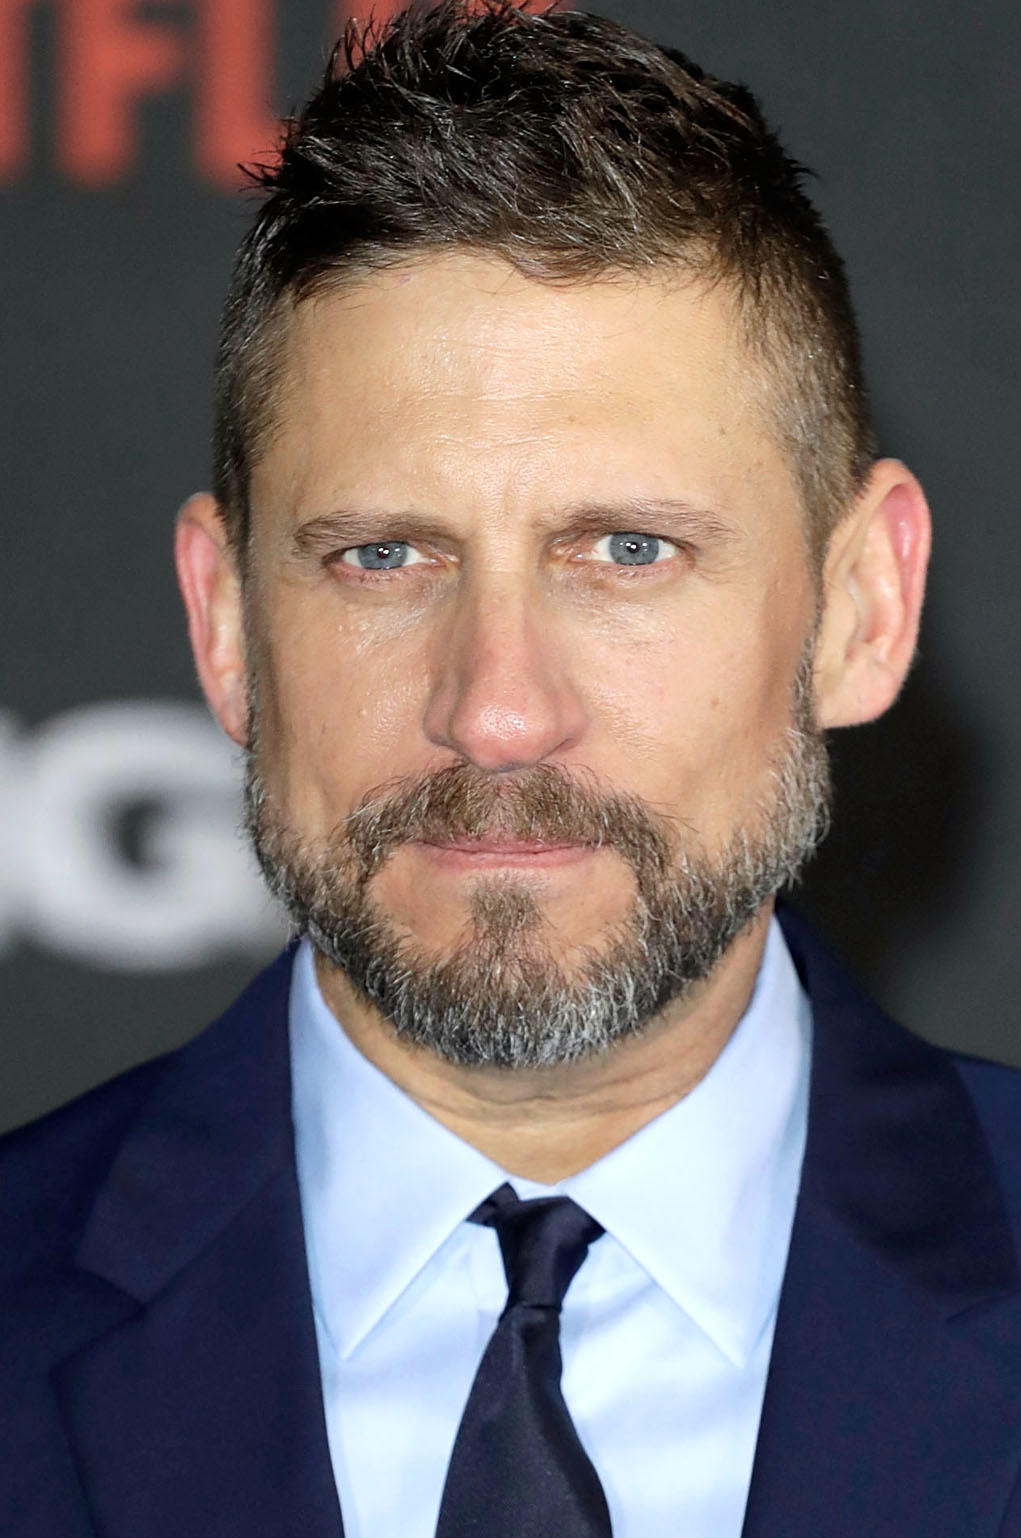 David Ayer at the European premiere of